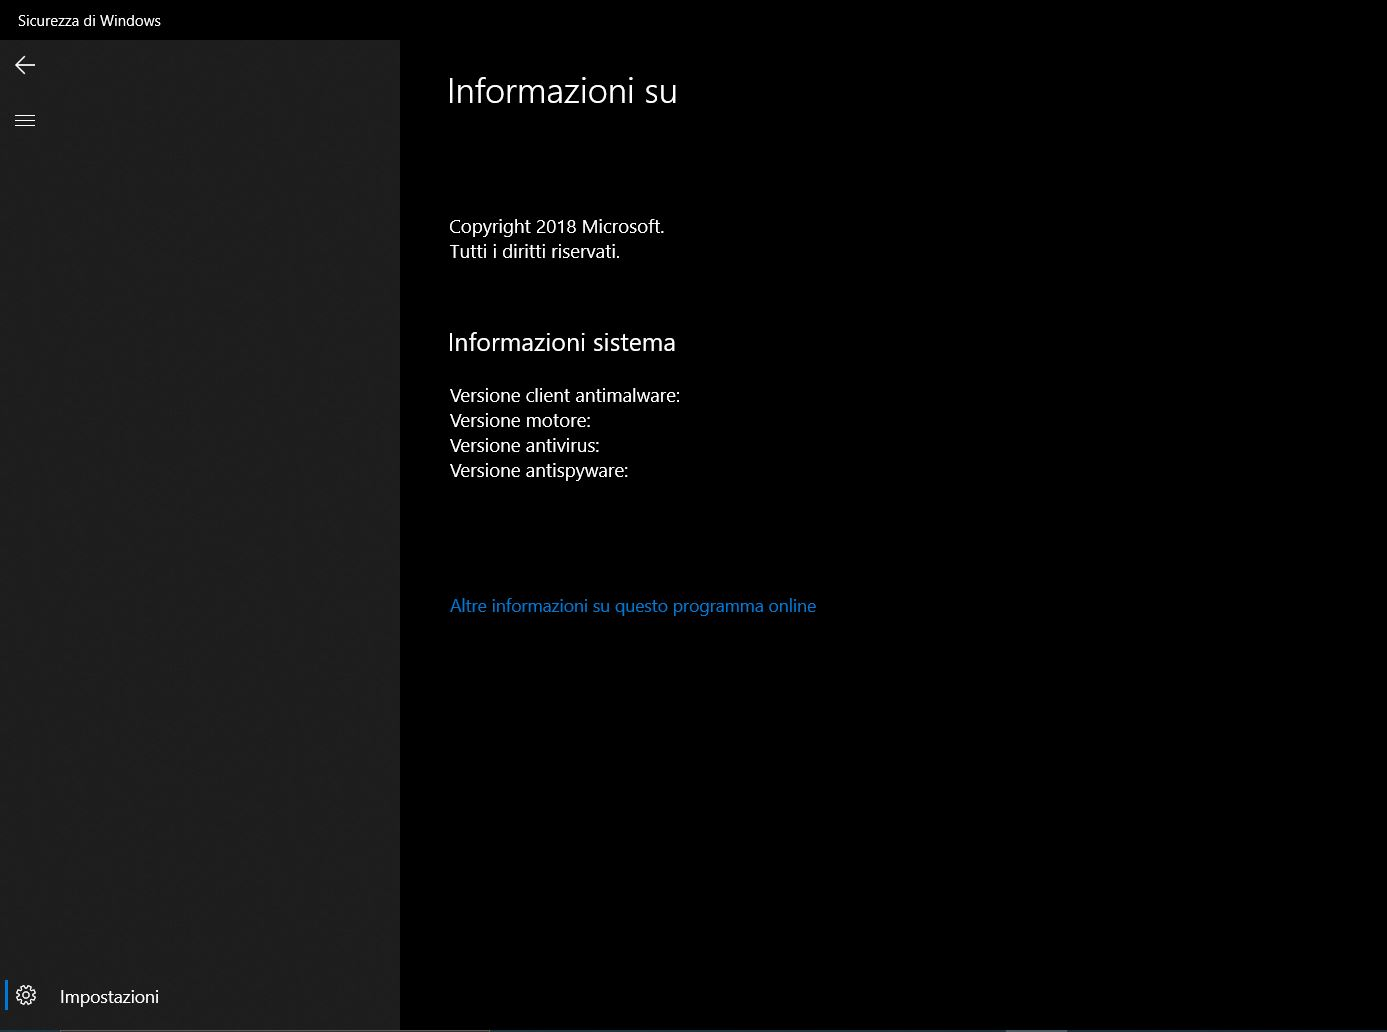 problem with win10 update.....related to windows defender completely corrupted 15462d12-0aa1-4dd7-8aa5-bd5573616420?upload=true.jpg